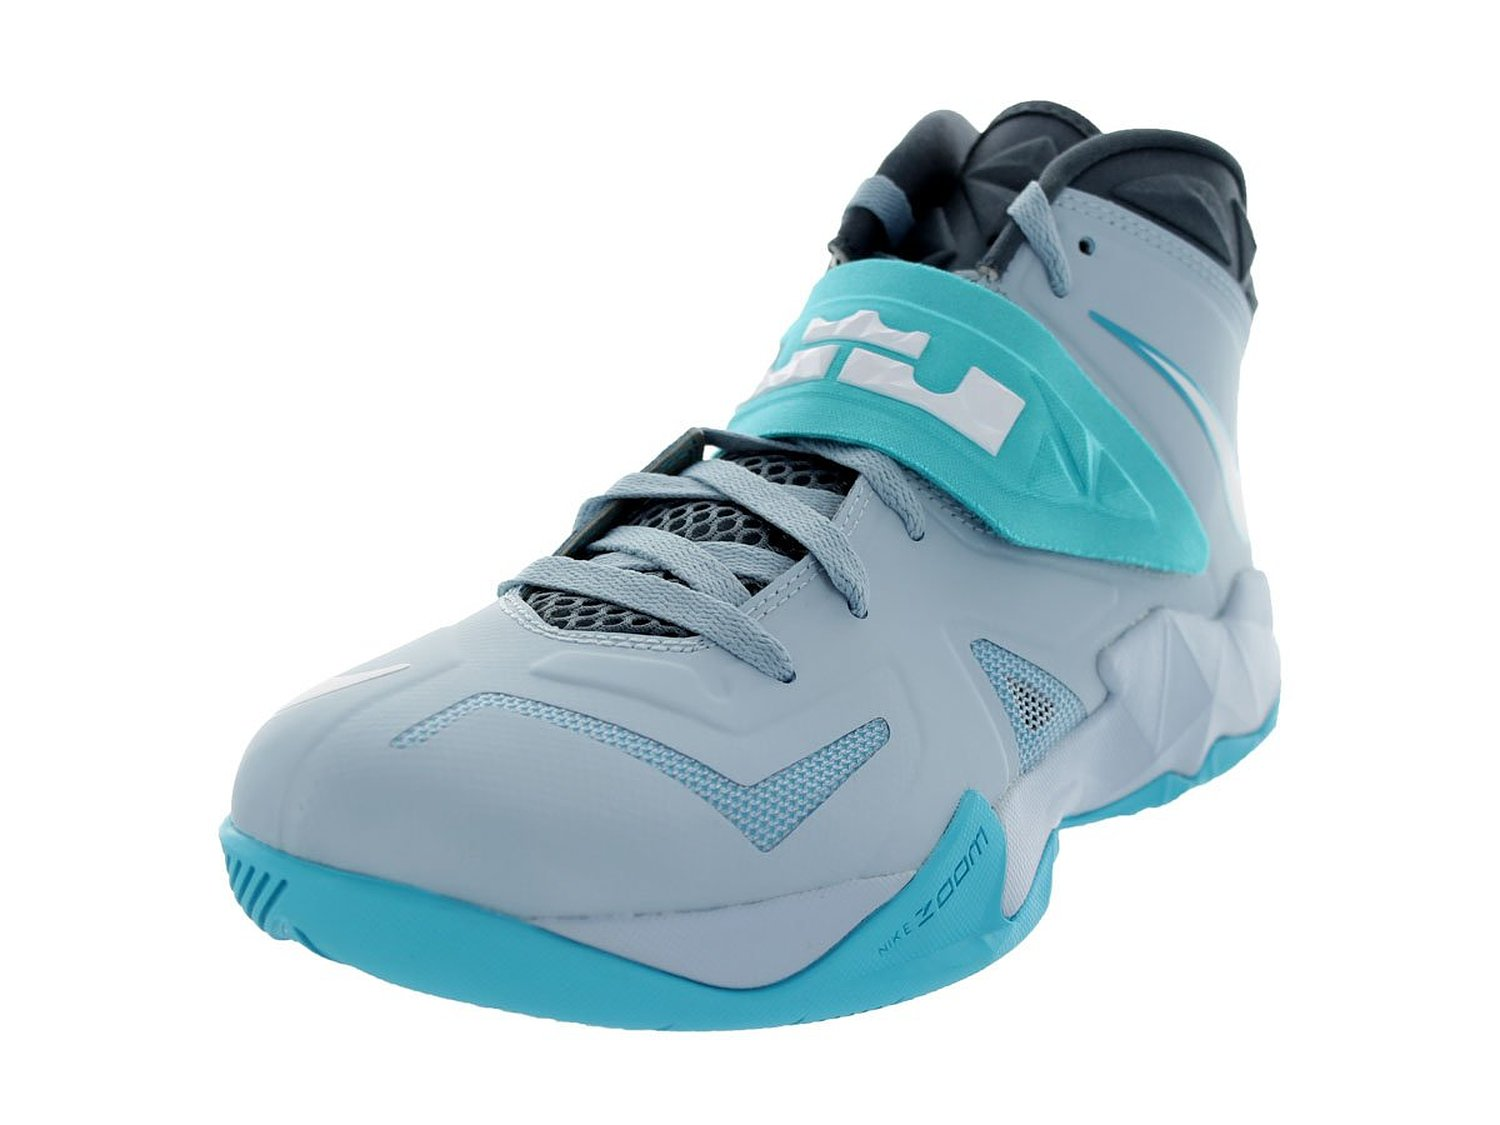 quality design f27d2 7af86 Nike Mens Zoom Soldier VII Basketball Shoes Lite Armory Blue/White/Gamma  Blue 599264-402 Size 10